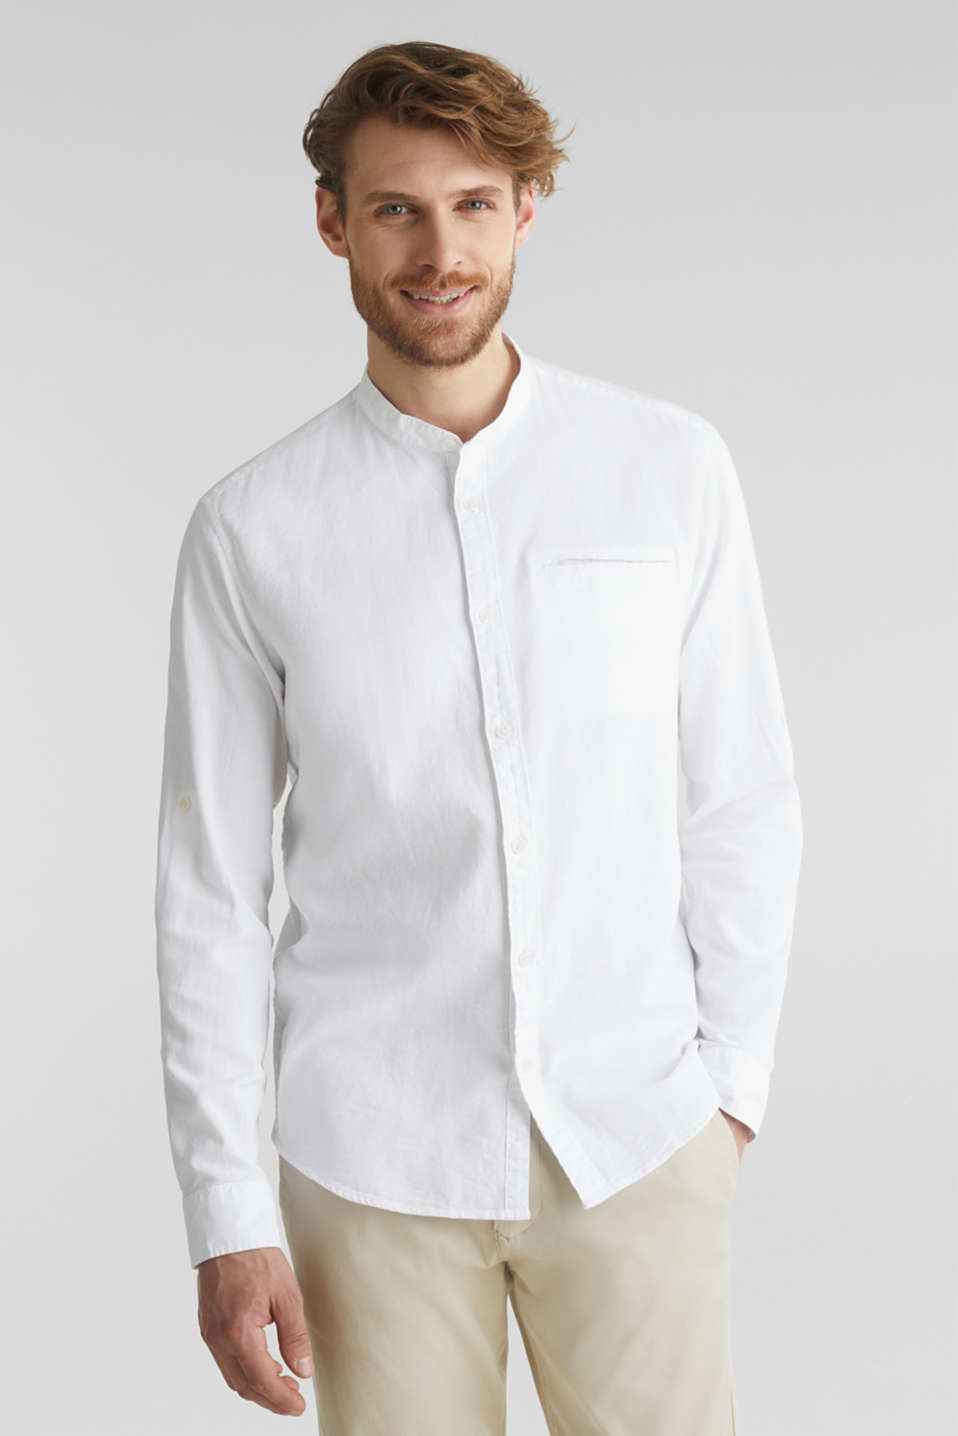 Esprit - Textured shirt made of 100% organic